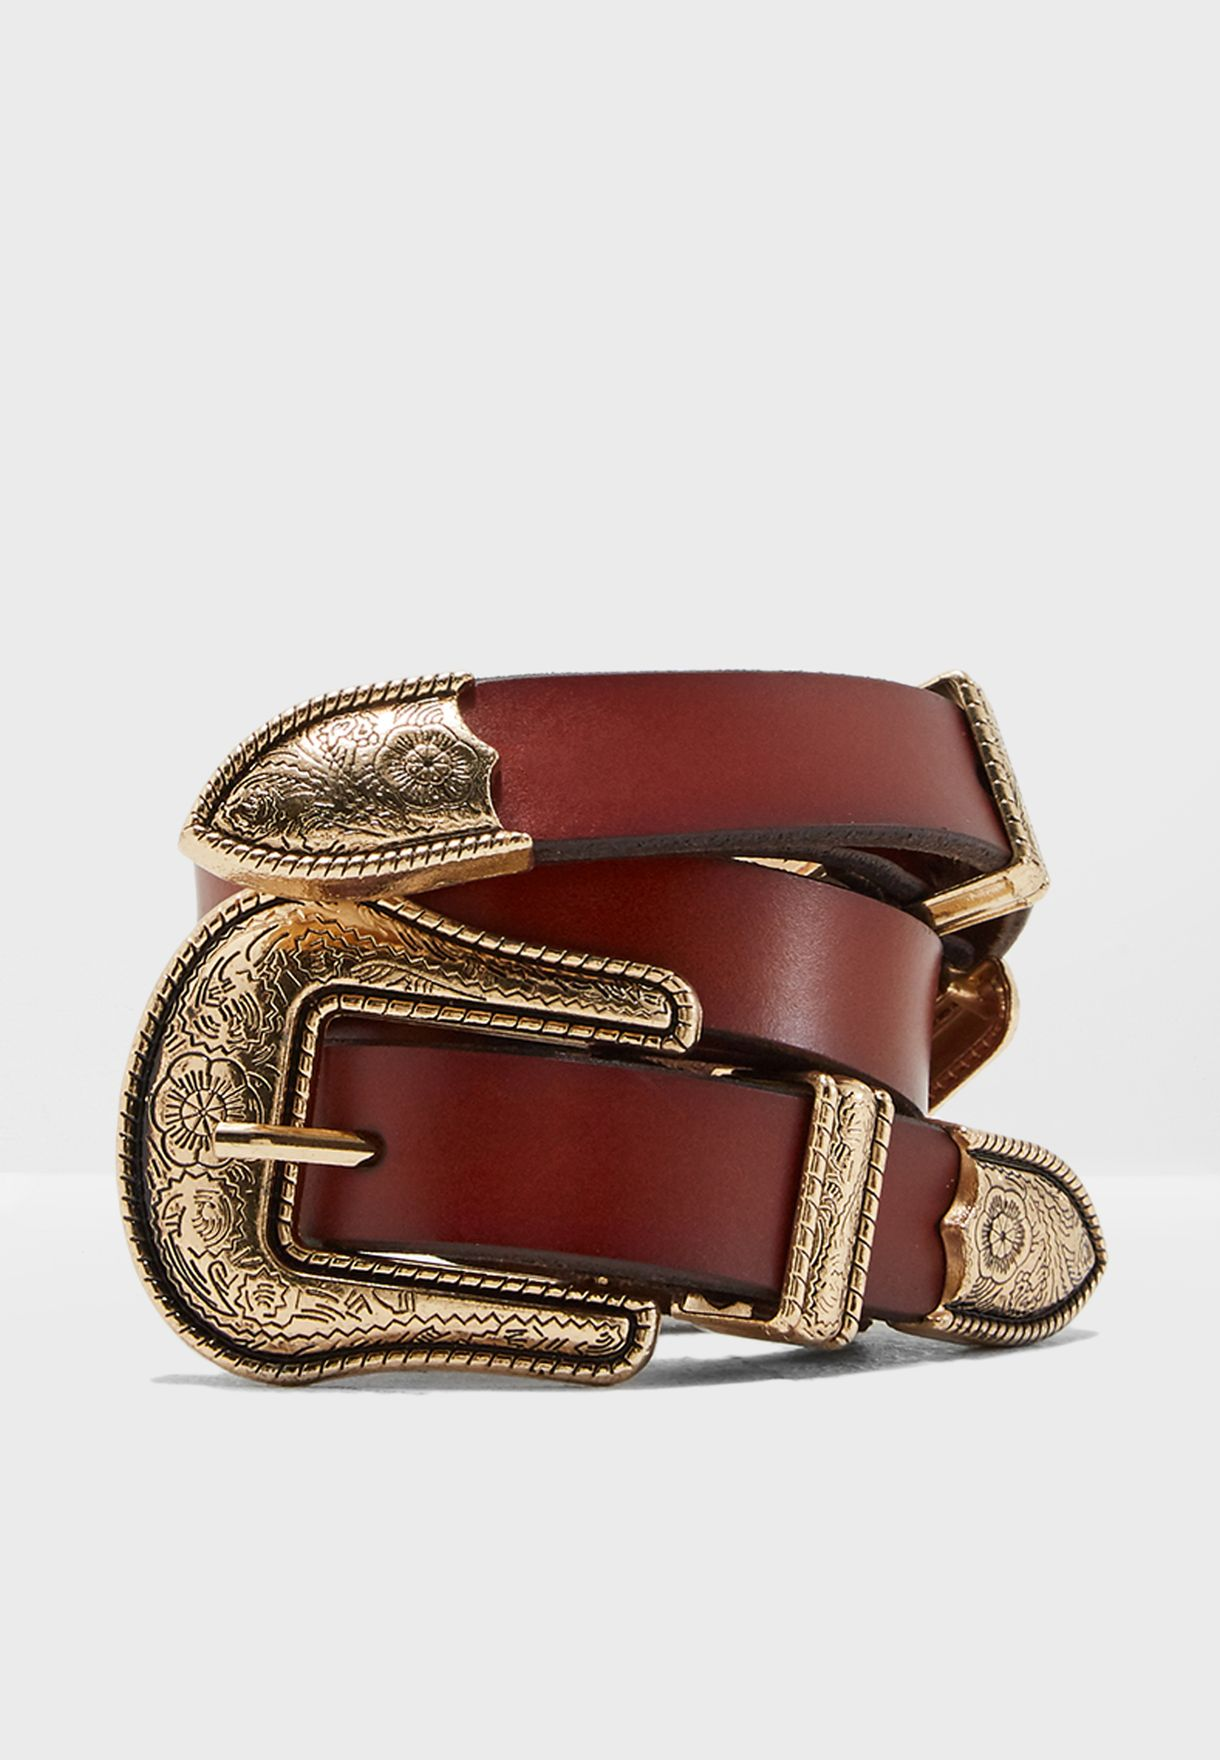 Two Buckles Double Belt